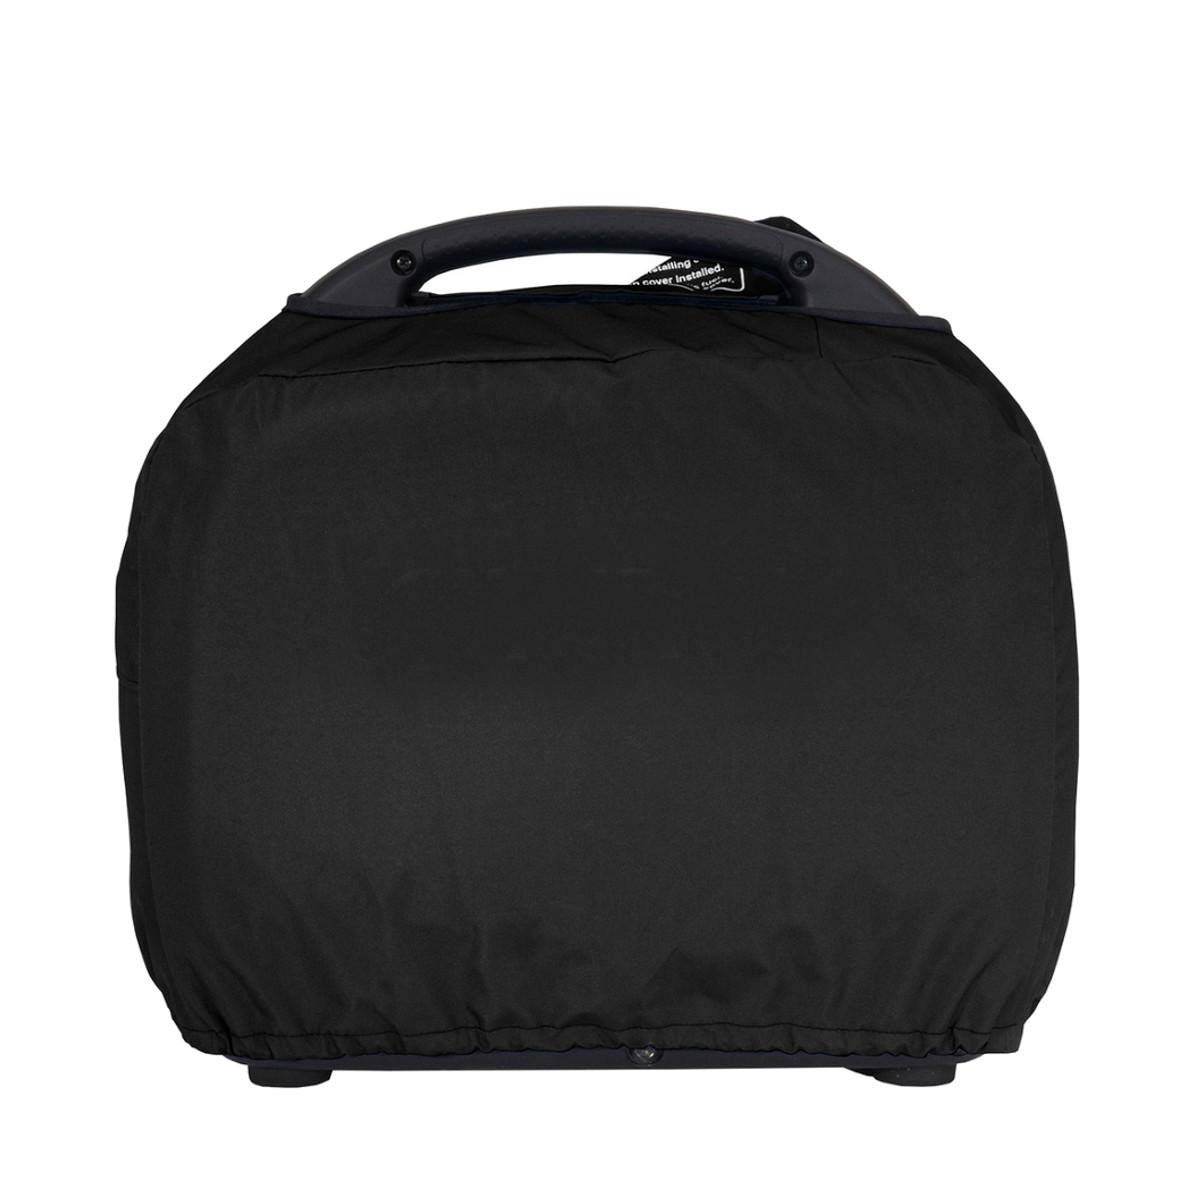 Oxford Cloth Black 340x562x475mm Generator Cover Waterproof Dustproof - Power Tool Parts Other Accessories- 1 x Generator COVER